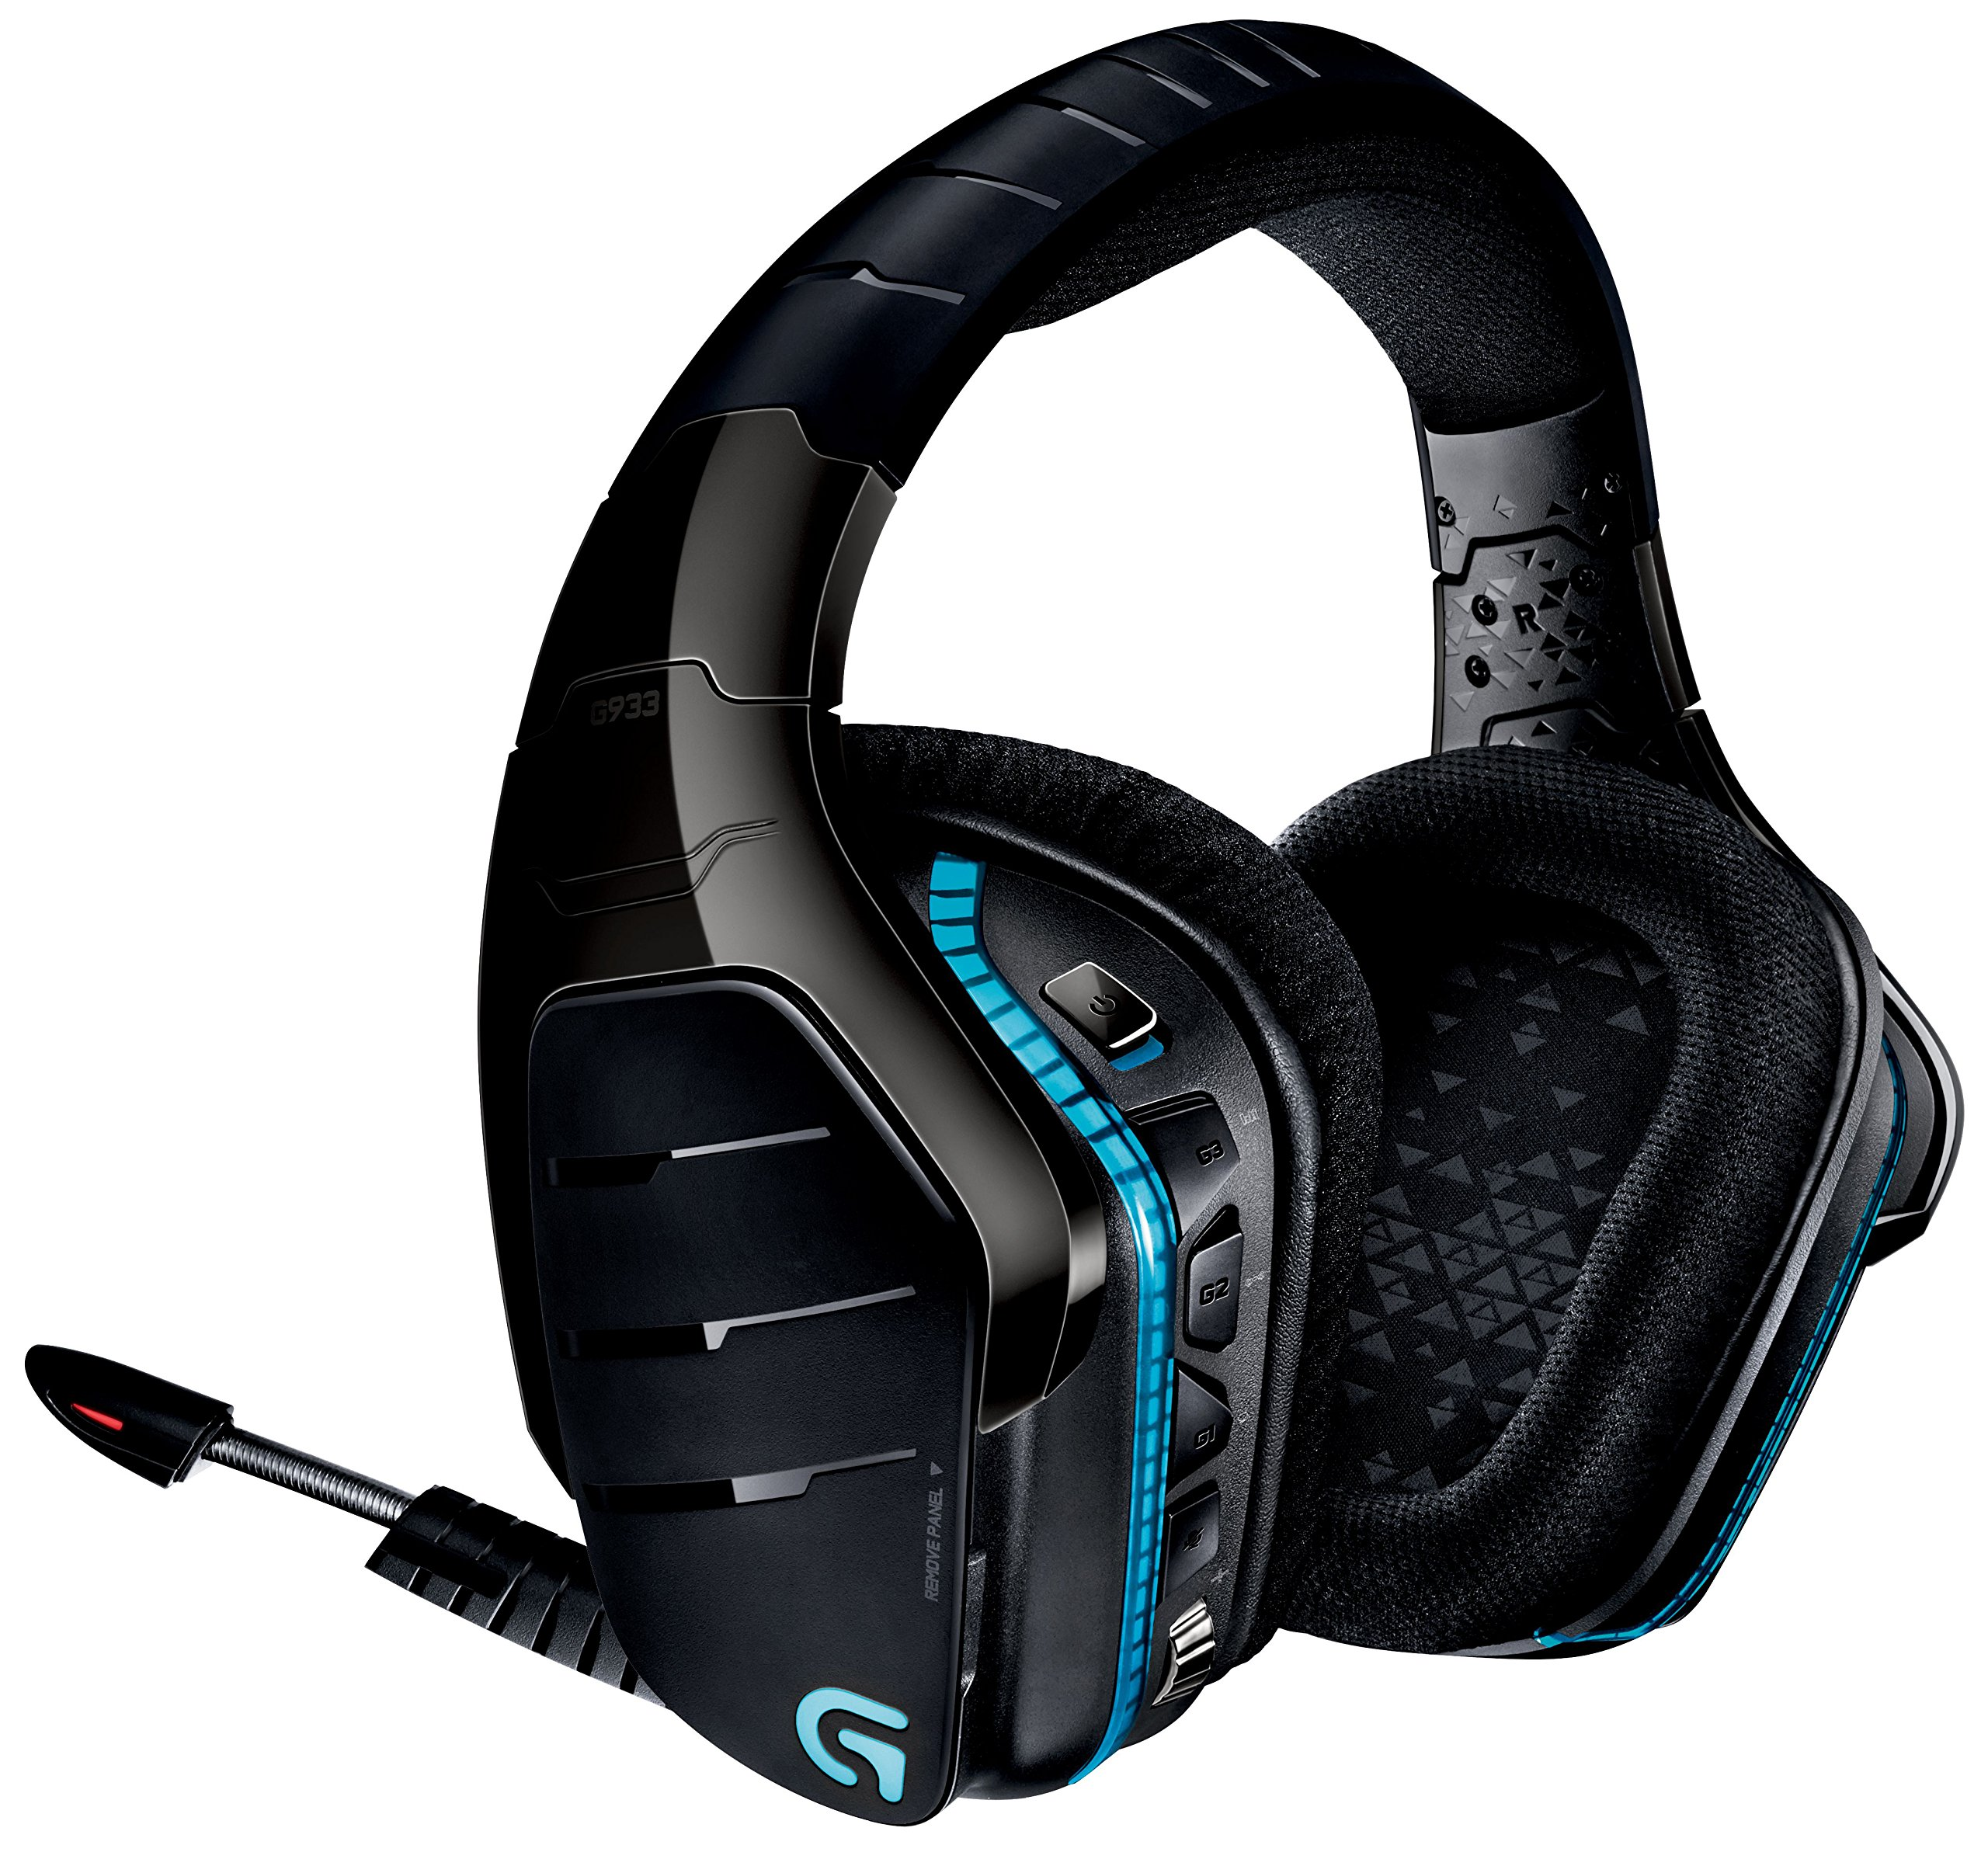 Logitech G933 Artemis Spectrum - Wireless RGB 7.1 Dolby and DTS:X HeadphoneX Surround Sound Gaming Headset - PC, PS4, Xbox One, Switch, and Mobile Compatible - Advanced Audio Drivers by Logitech